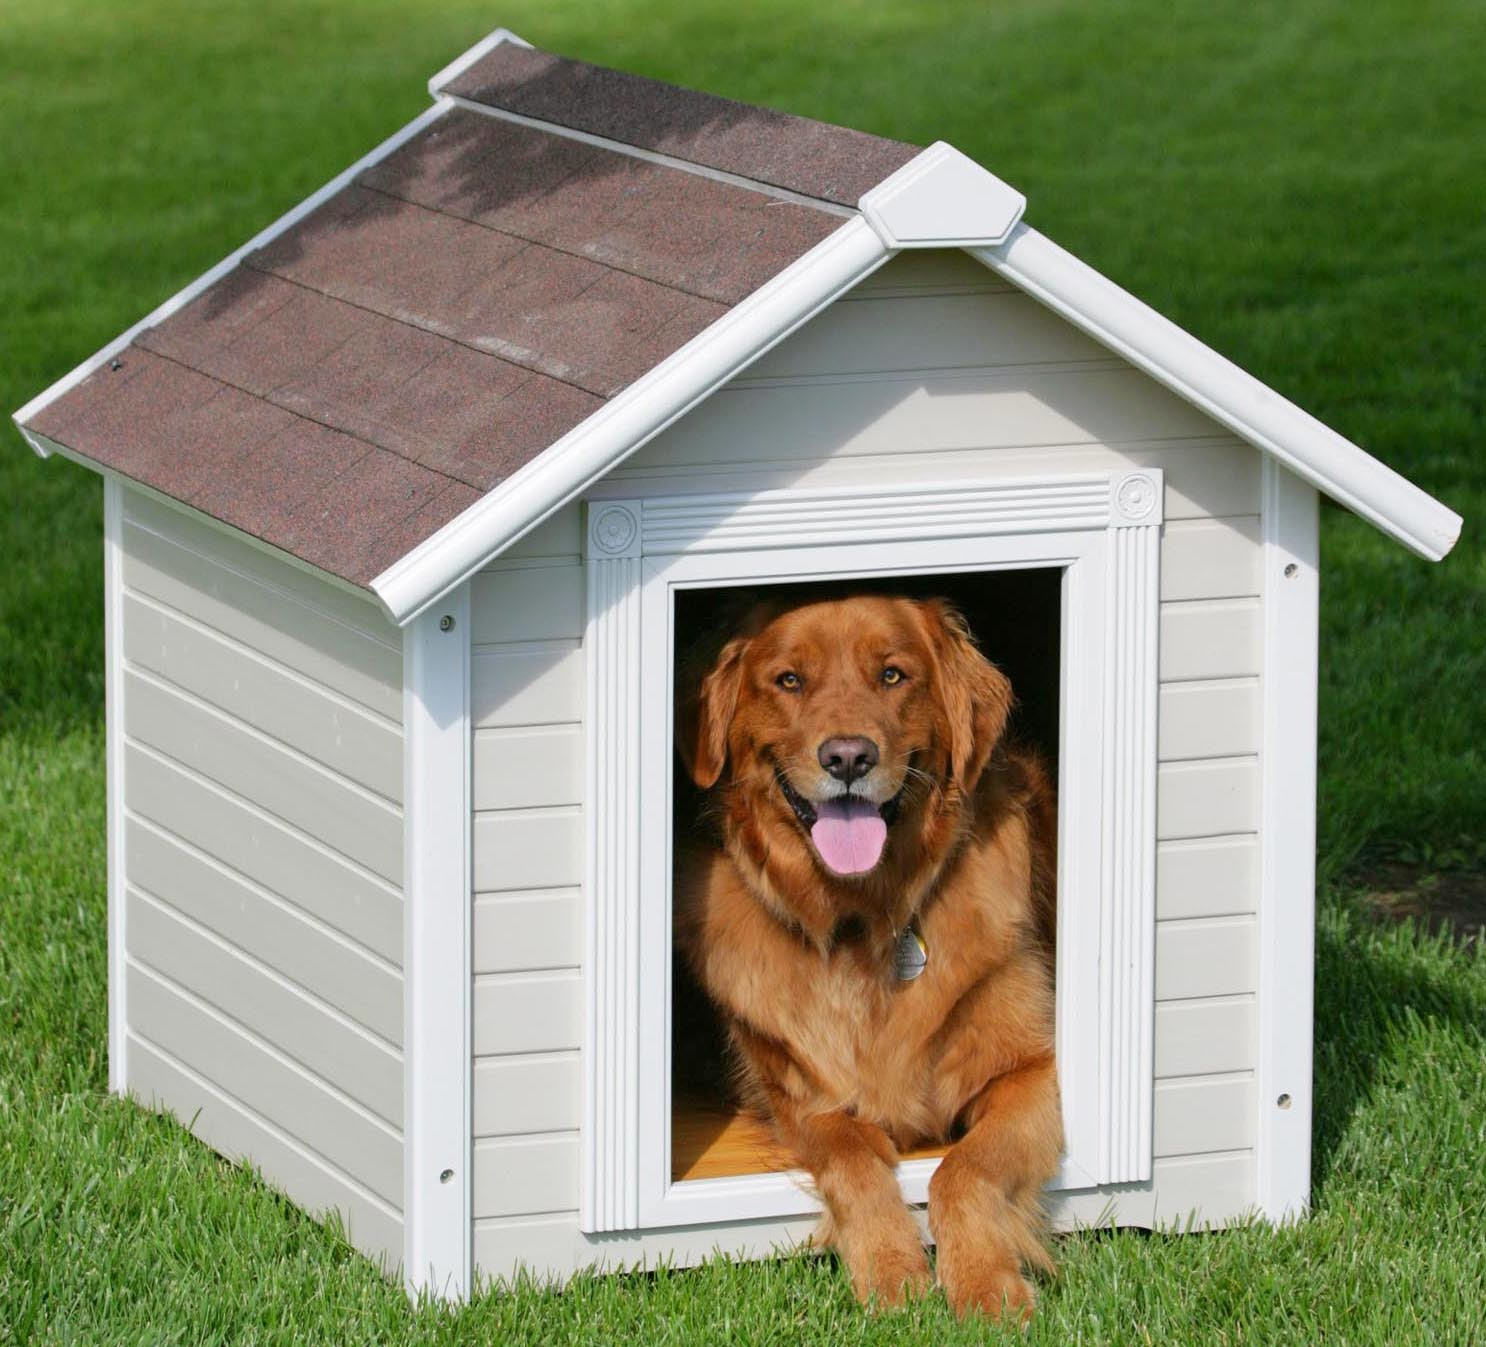 Home Design Ideas For Dogs:  Dog House Designs